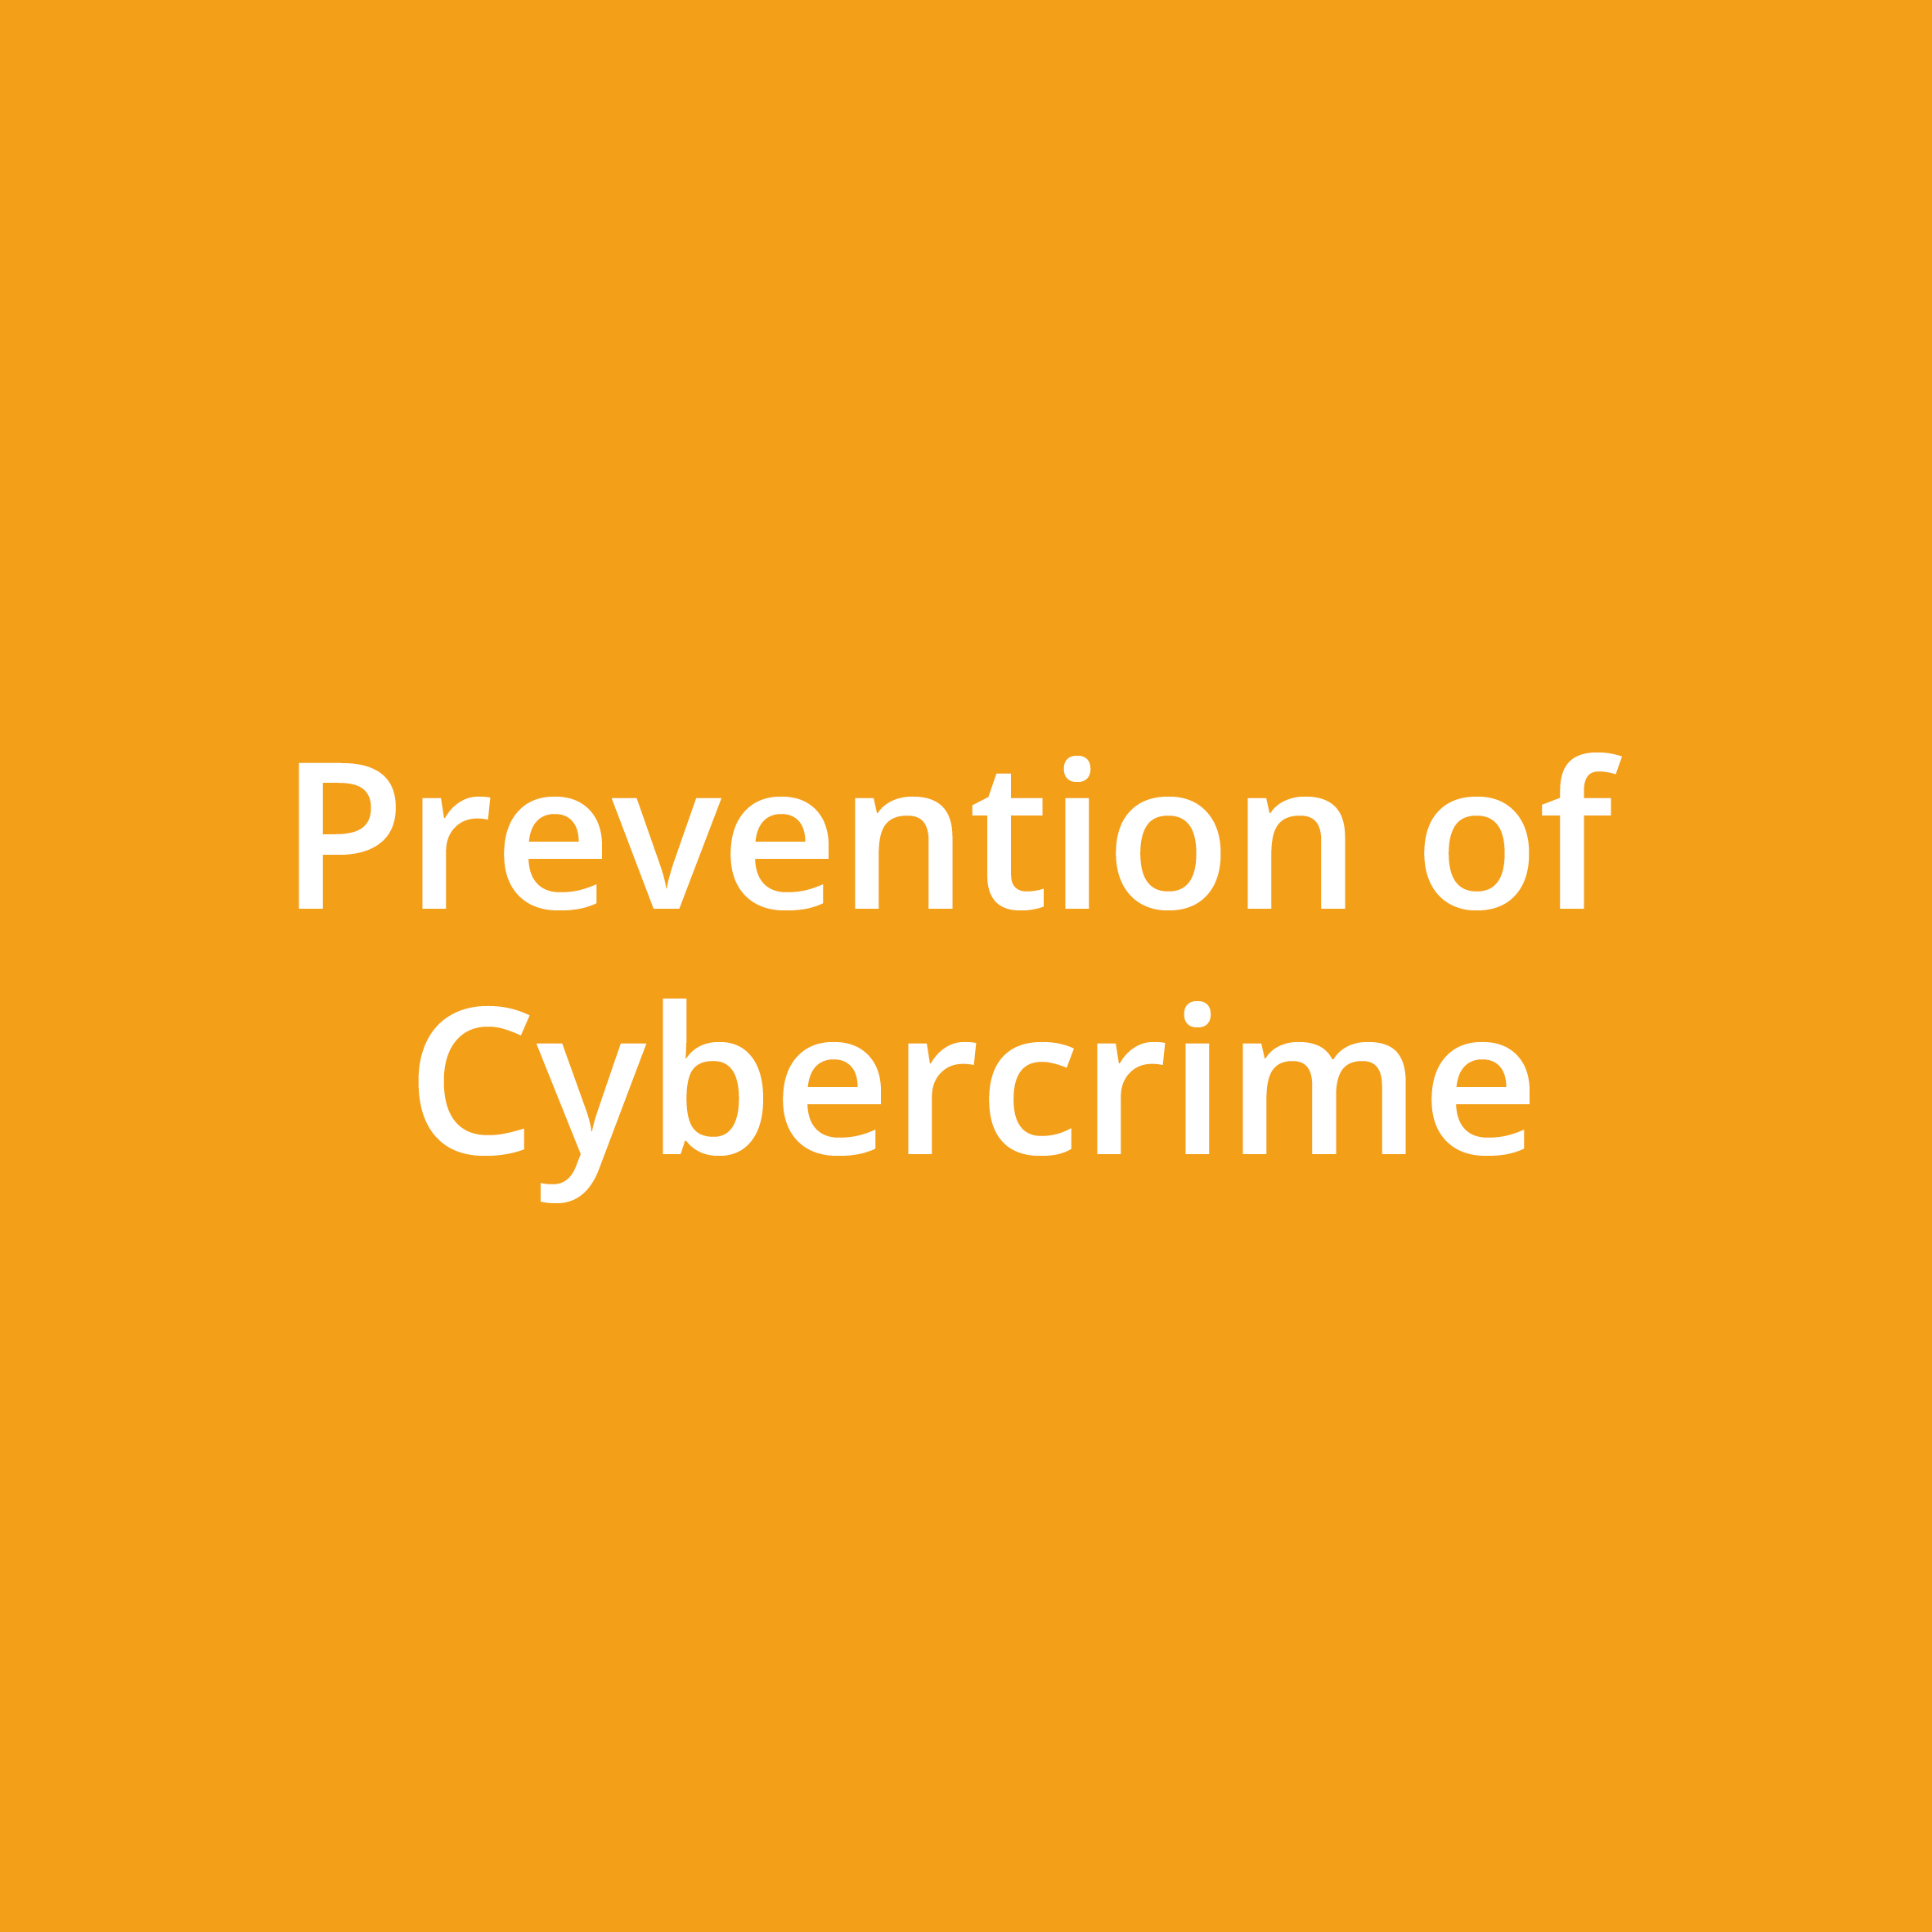 Prevention of Cybercrime